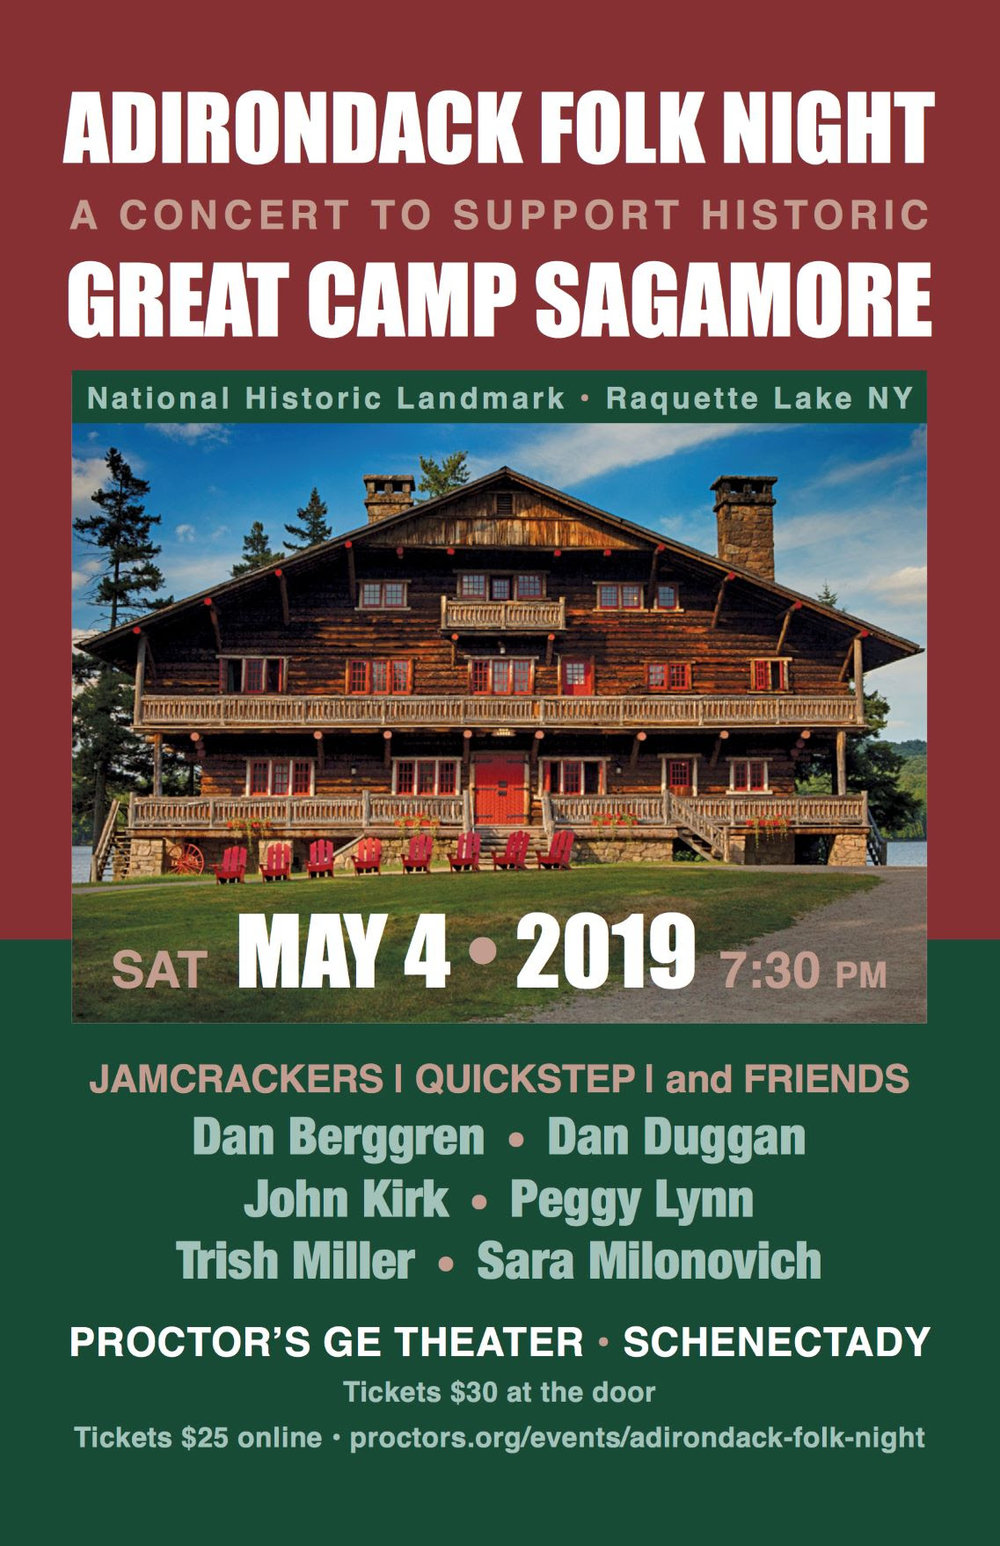 Some of the most accomplished traditional musicians of the Adirondack region celebrate over 40 years of music at Sagamore; all concert proceeds will help ensure the future of Adirondack folk music at Sagamore, with special emphasis on its youth and children's music programming.  We will be joined by other regional museums, art galleries and non-profits, join us for an evening of Adirondack music, history and nature!   Doors will open at 6pm and audience members are invited and encouraged to meet the musicians and visit with representatives of other attractions.